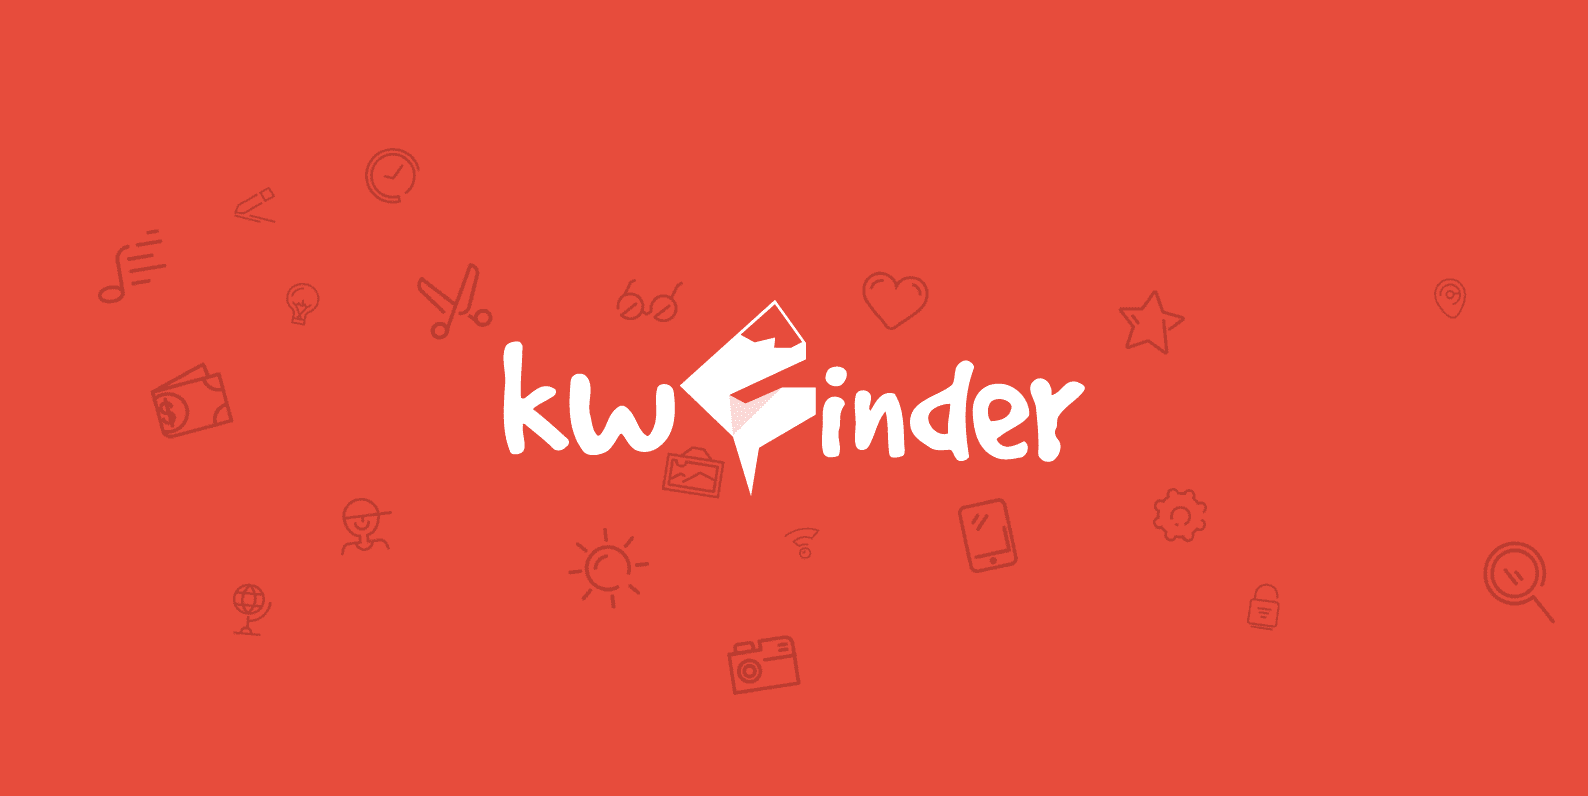 kwfinder review 2018